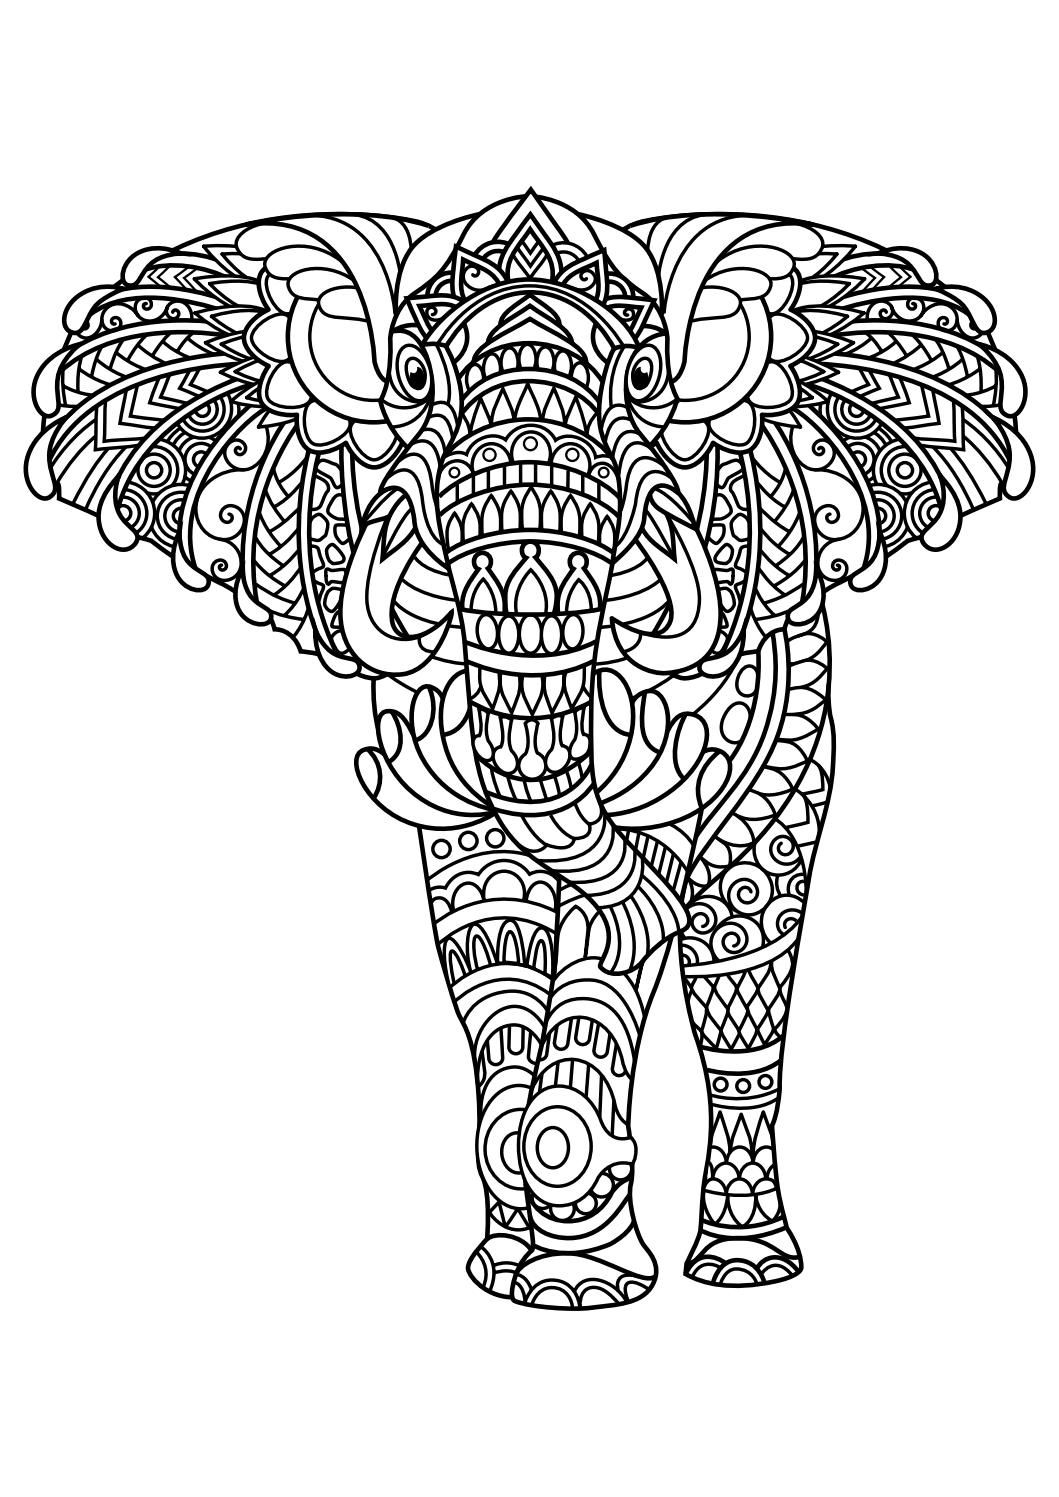 coloring pages pdf # 4